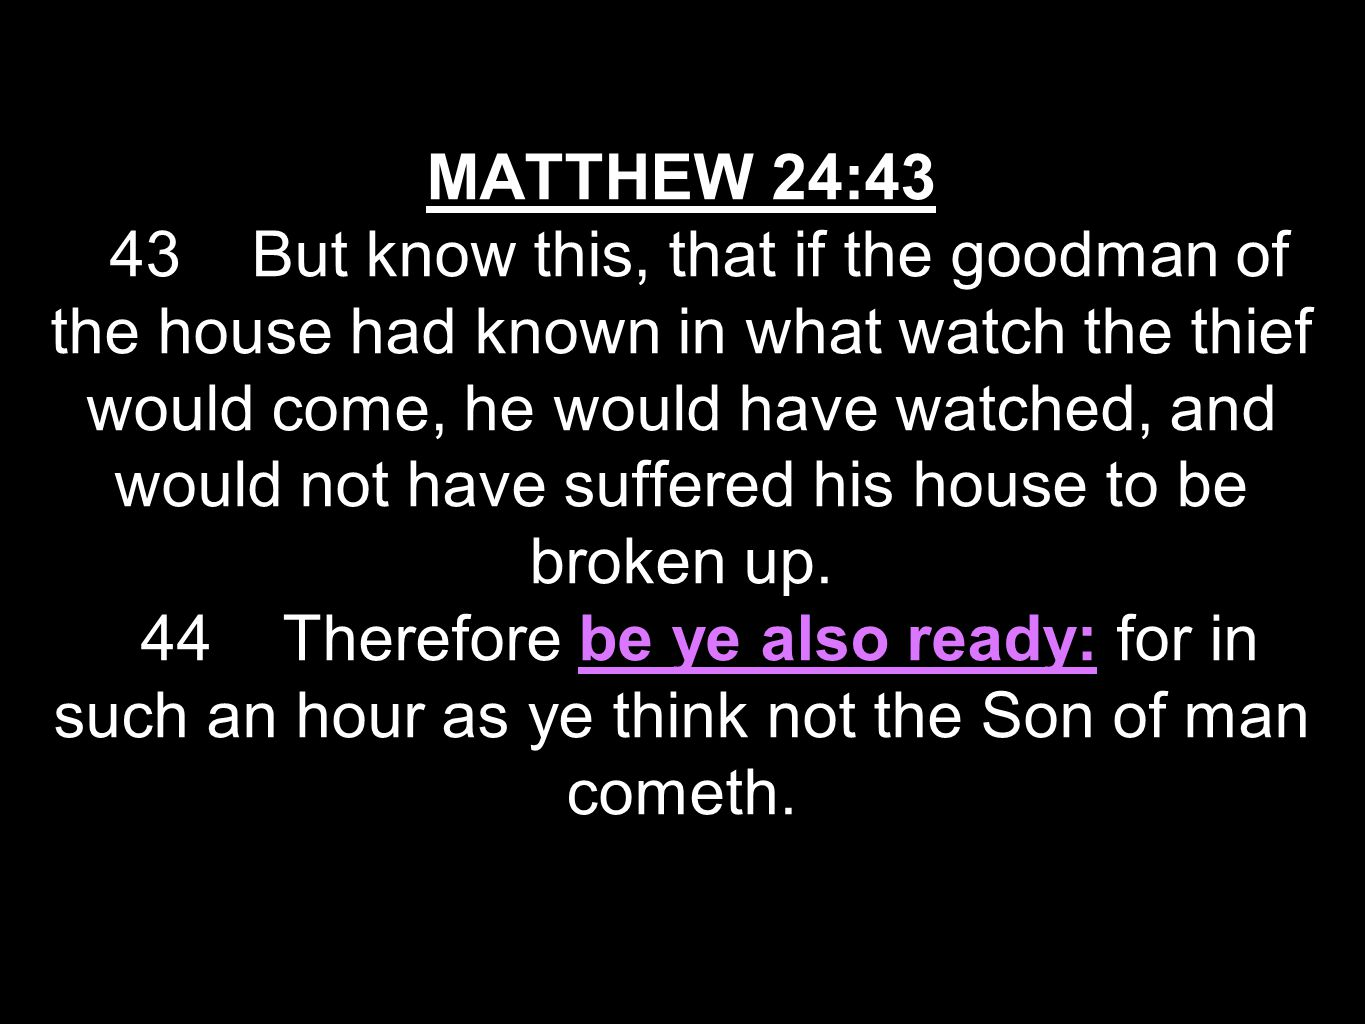 MATTHEW 24:43 43 But know this, that if the goodman of the house had known in what watch the thief would come, he would have watched, and would not have suffered his house to be broken up.